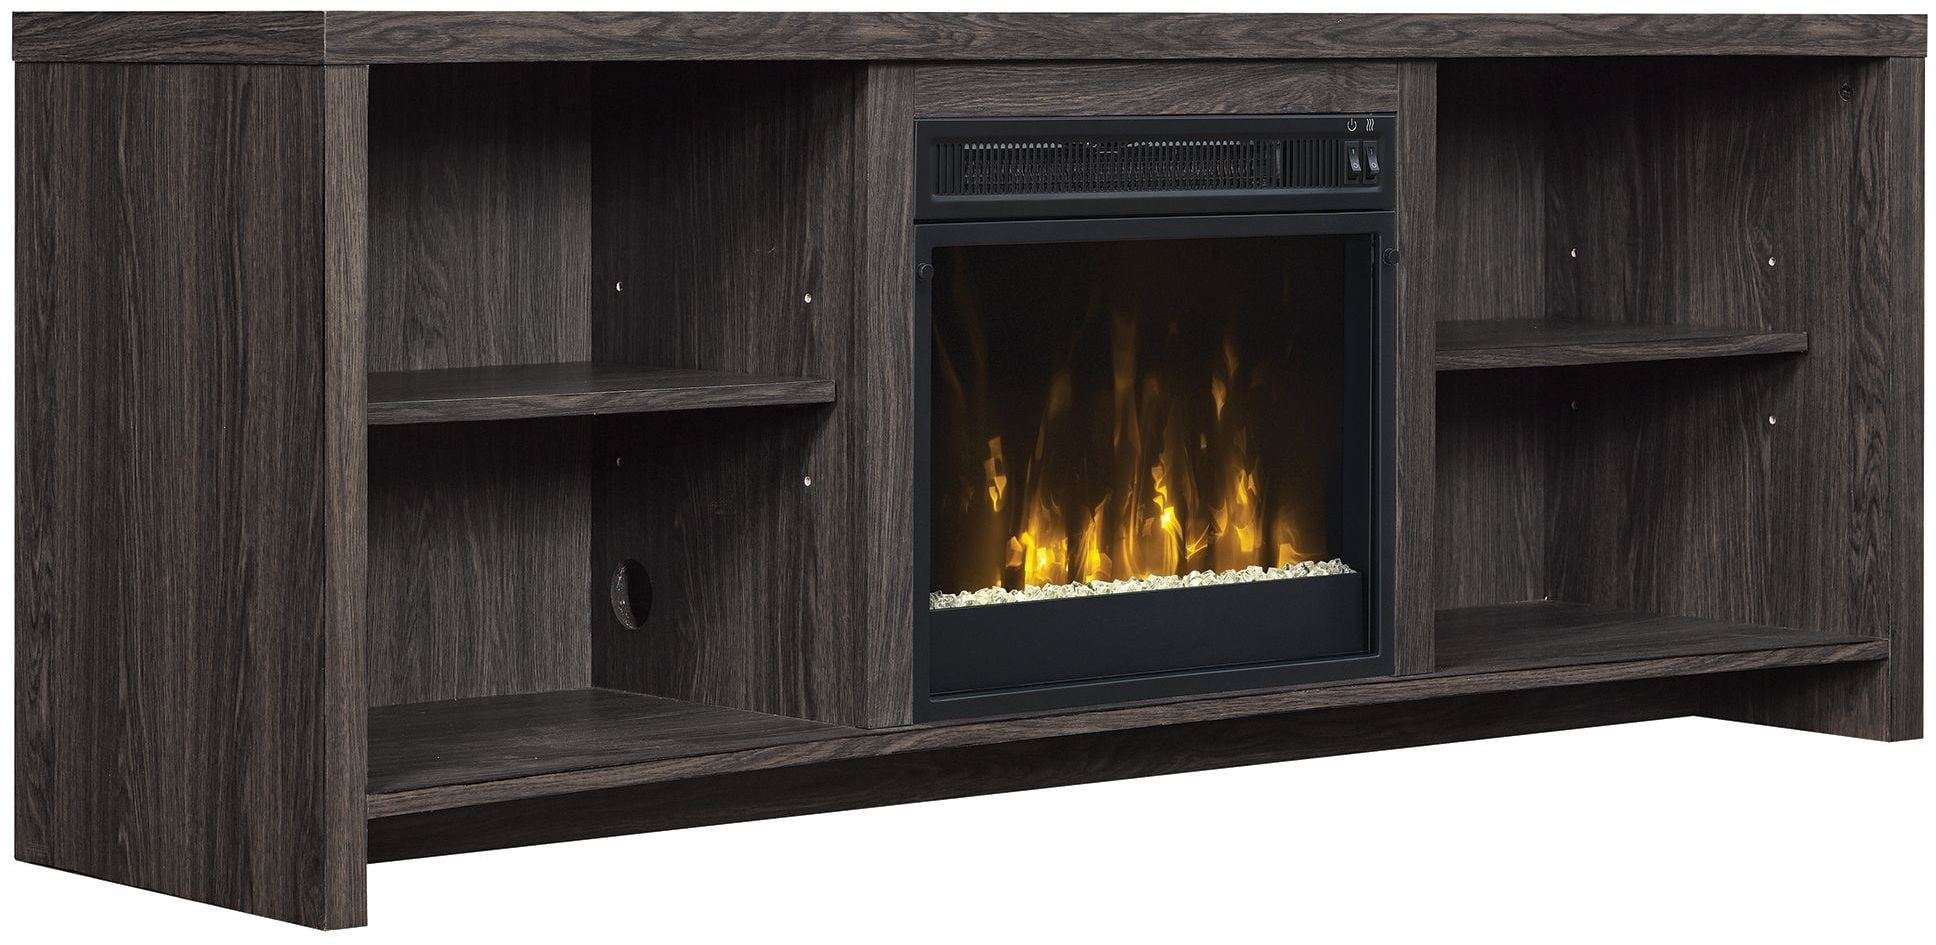 ClassicFlame Black Walnut Shelter Cove TV Stand From Twin Star  International | Coleman Furniture